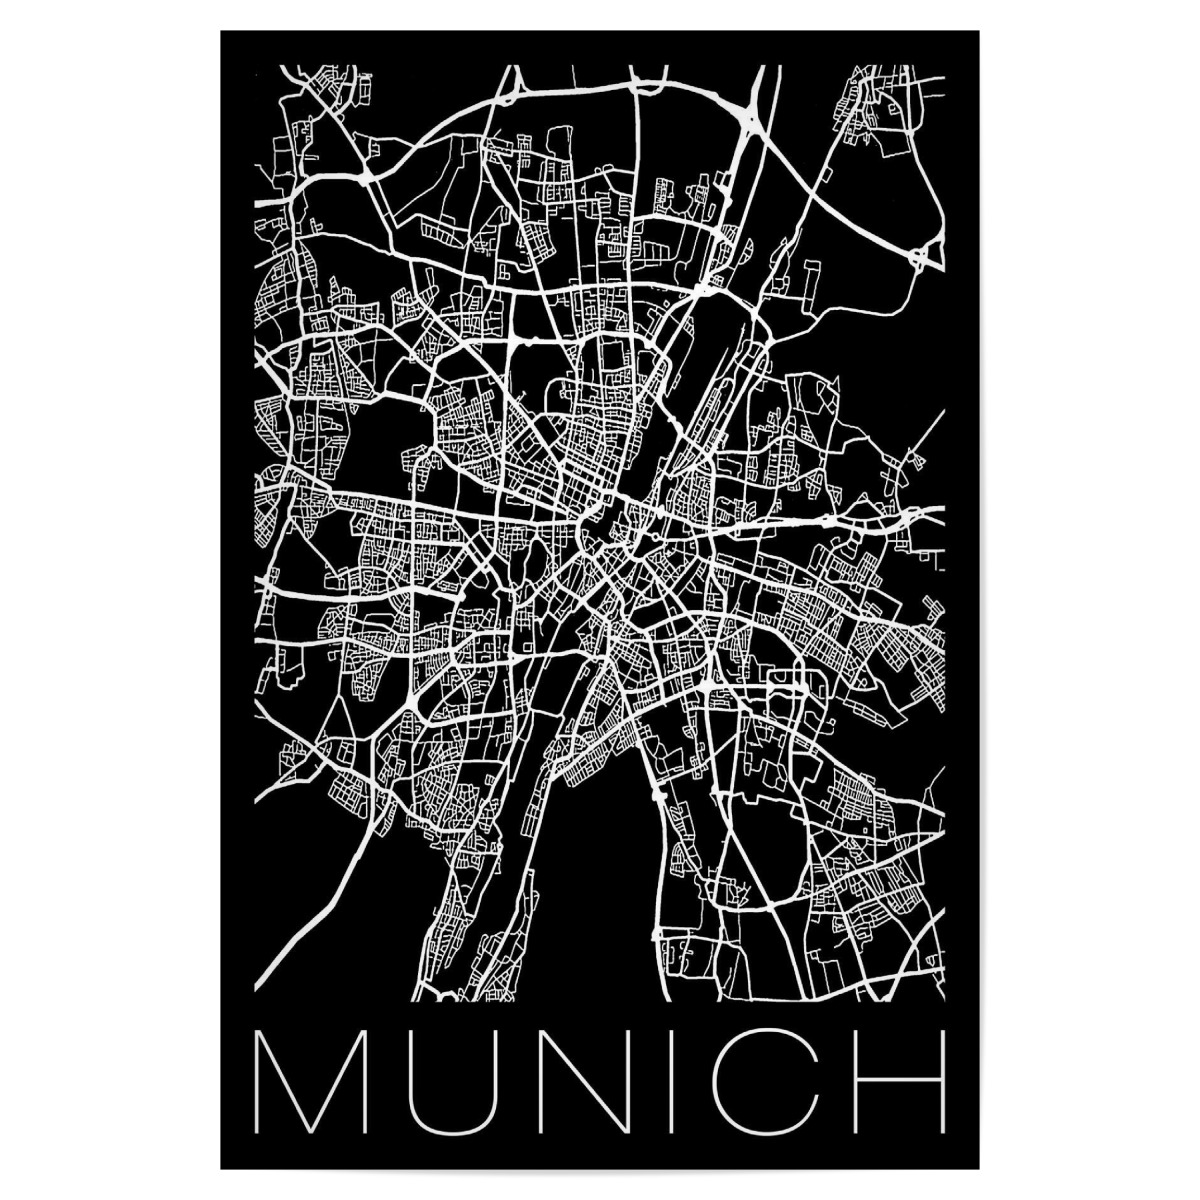 Retro Map Munich Germany als Poster bei artboxONE kaufen